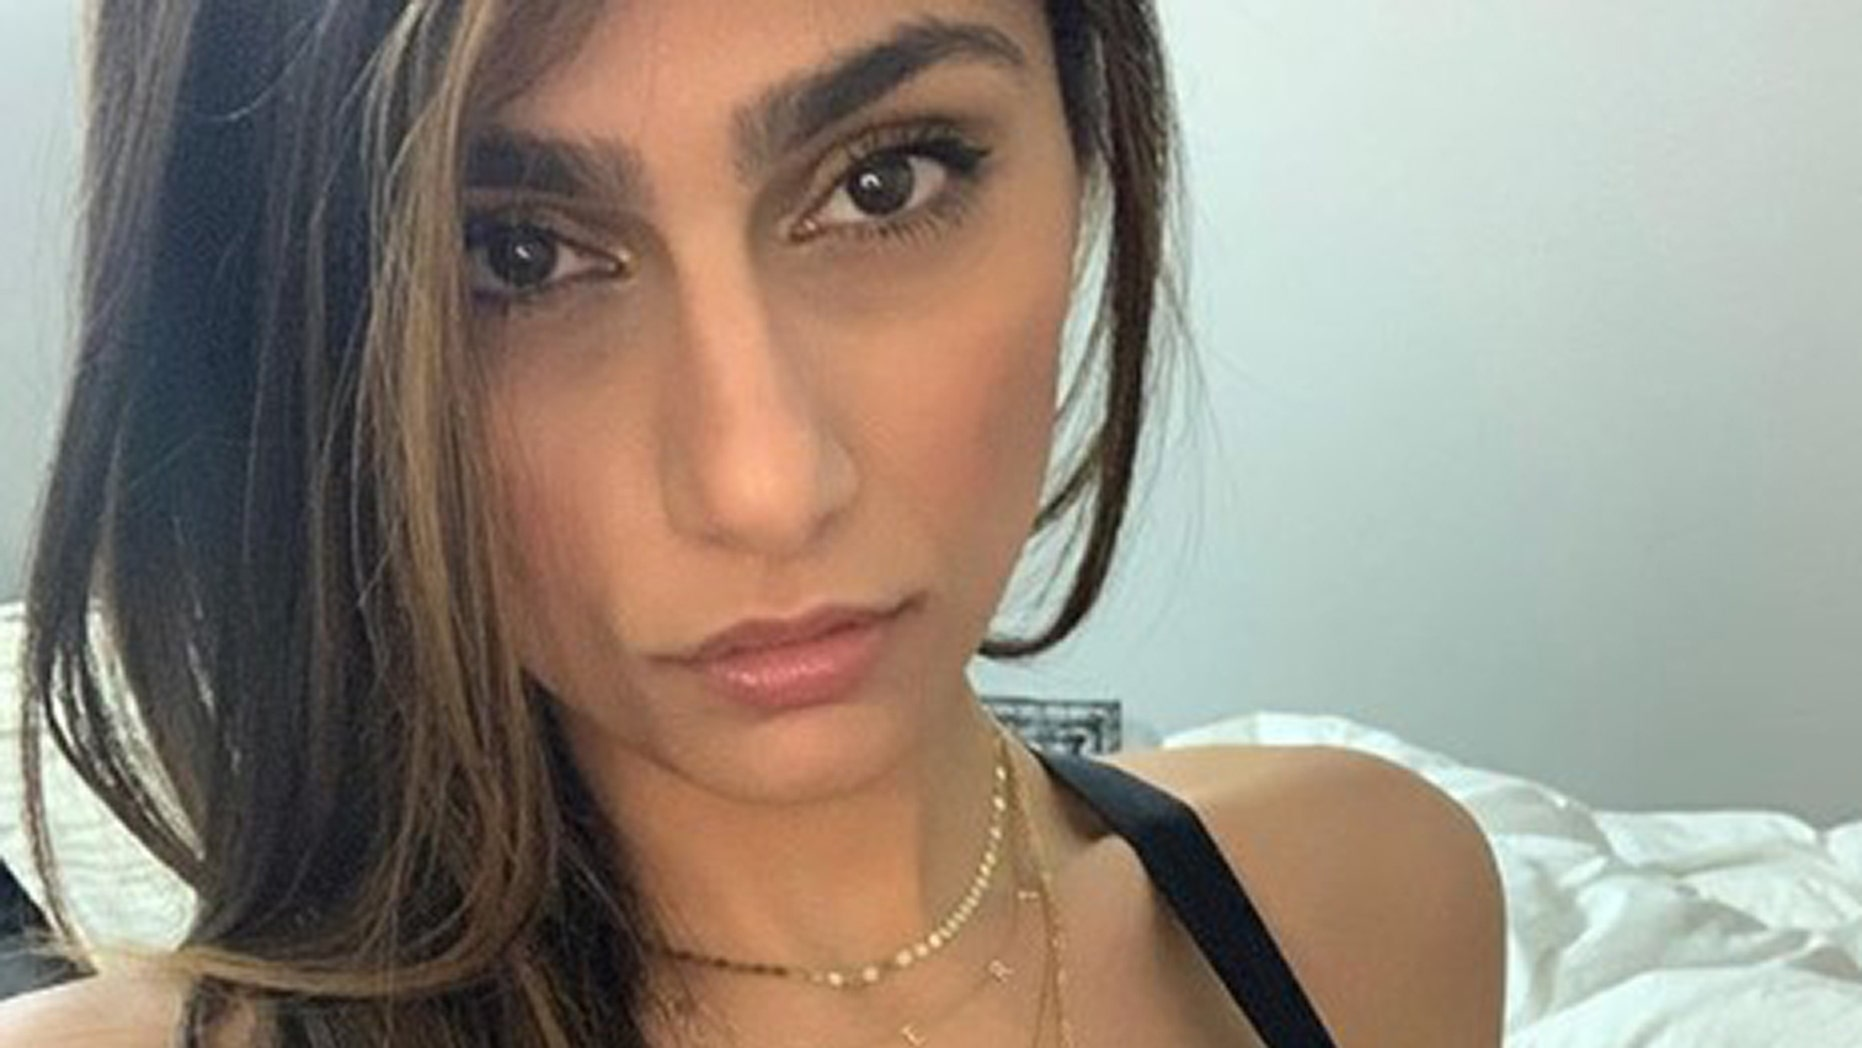 Westlake Legal Group Mia-Khalifa-THUMB Former porn star from viral 'hijab' scene reveals she made only $12G in career Gerren Keith Gaynor fox news fnc/entertainment fnc article 40c60c62-028e-52b7-9633-5475d74e9afe